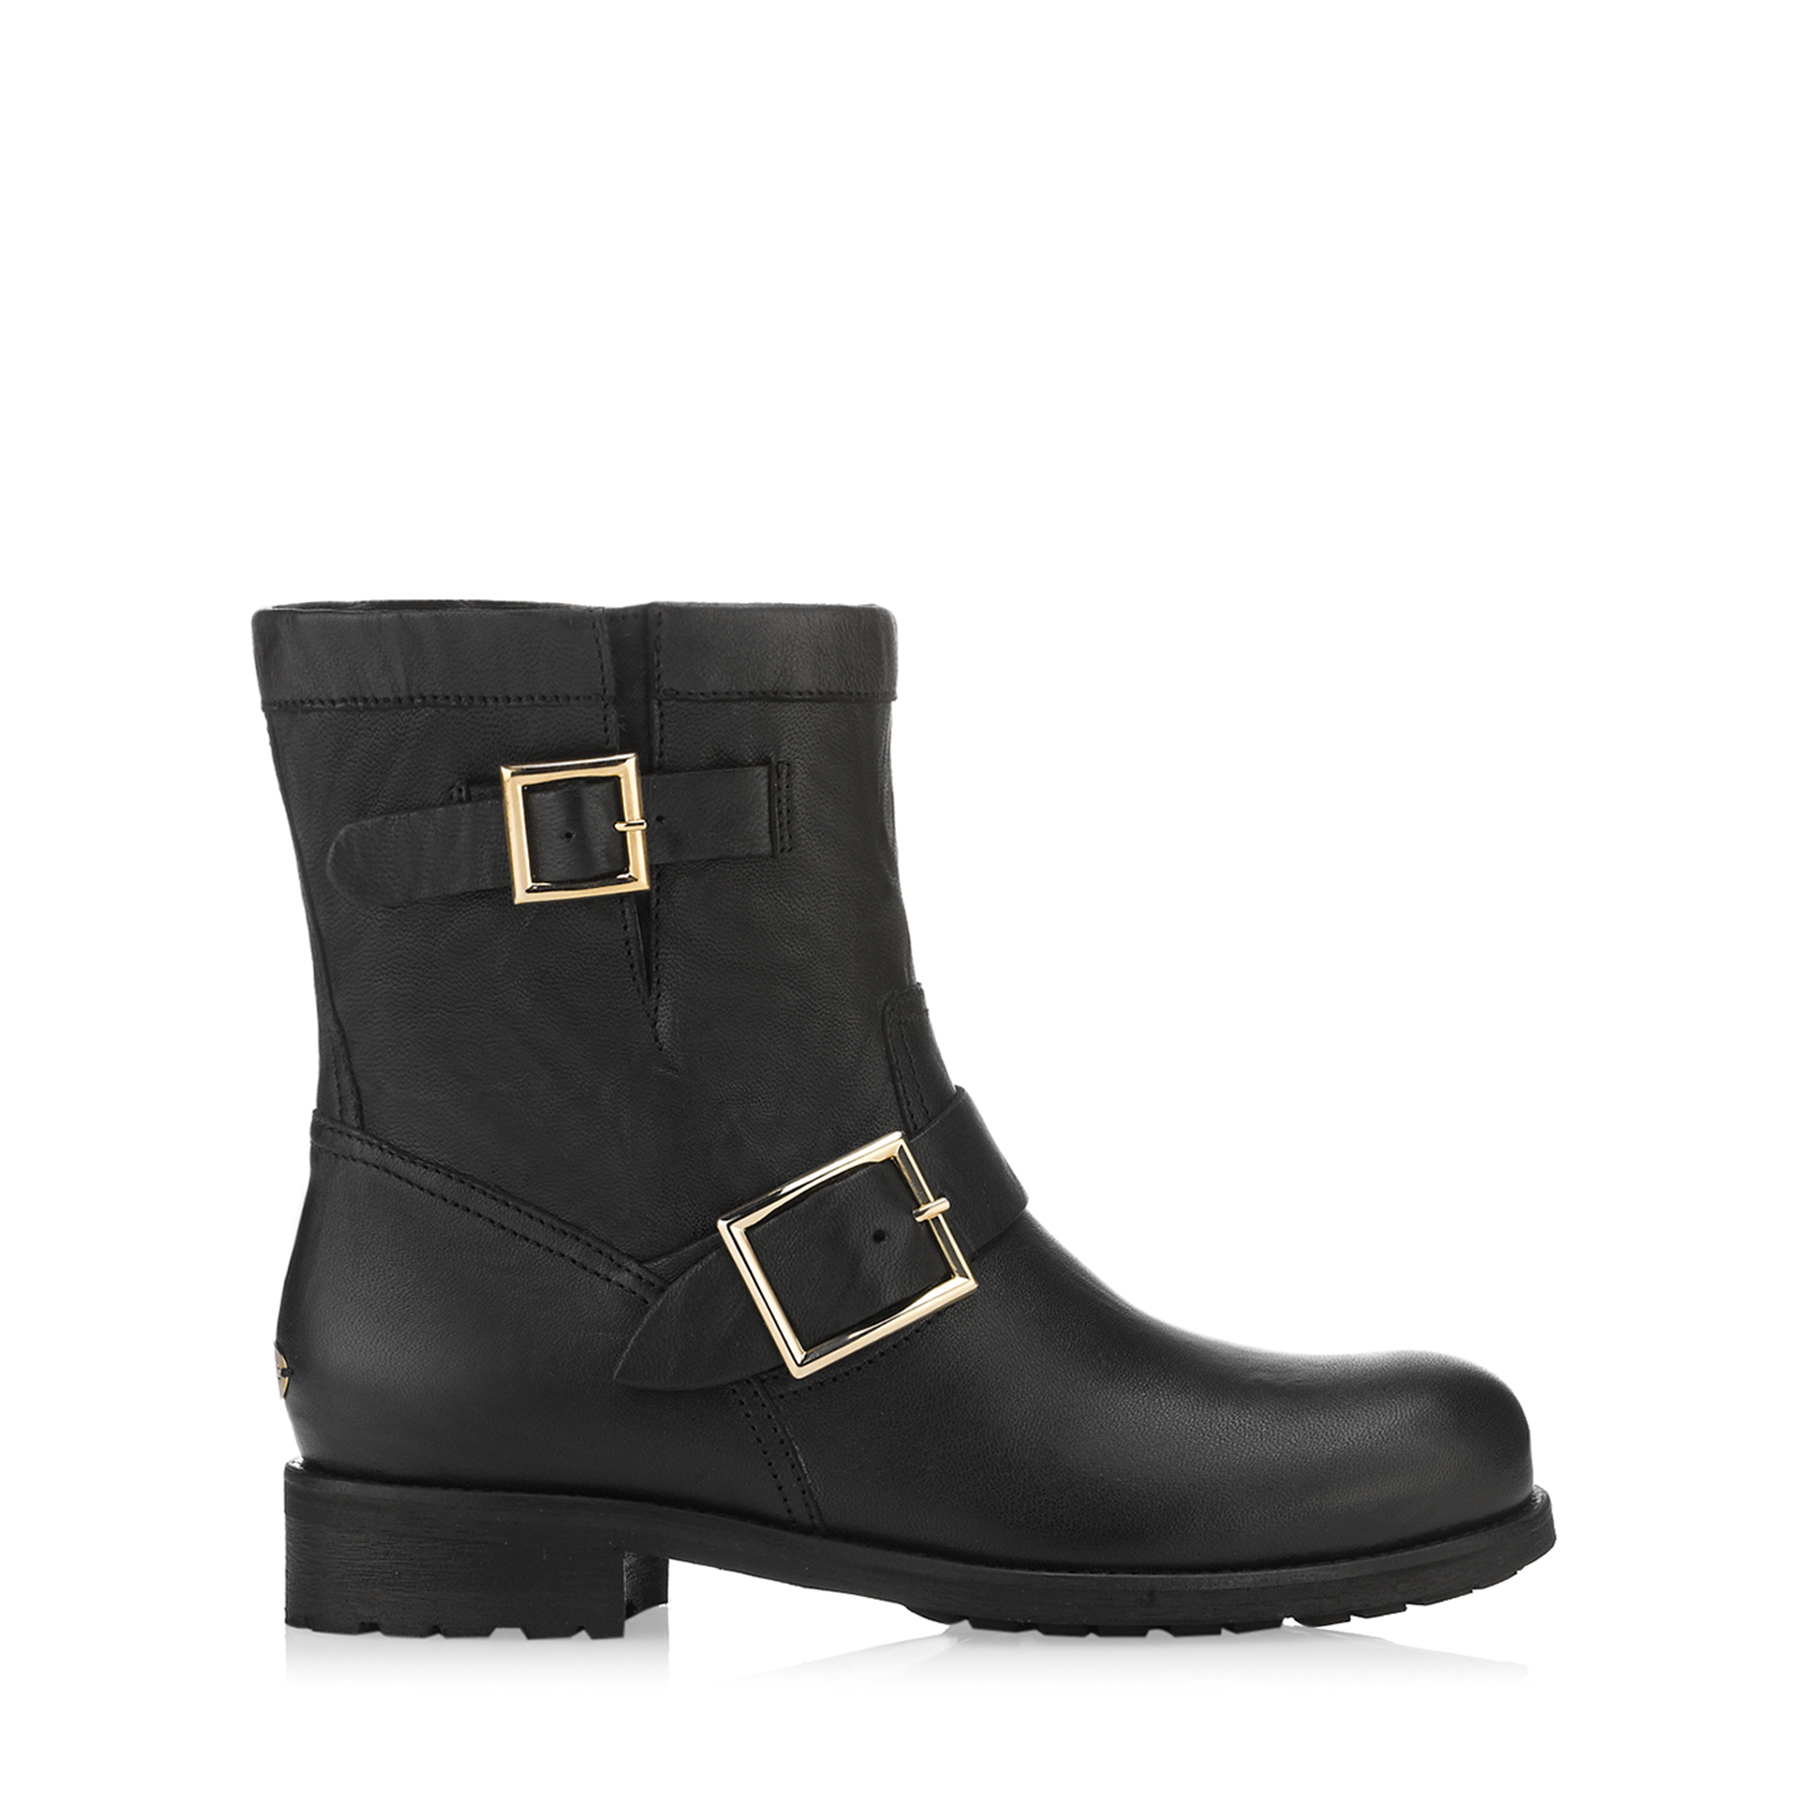 YOUTH – LINED Black Biker Leather Biker Boots with Rabbit Fur by Jimmy Choo